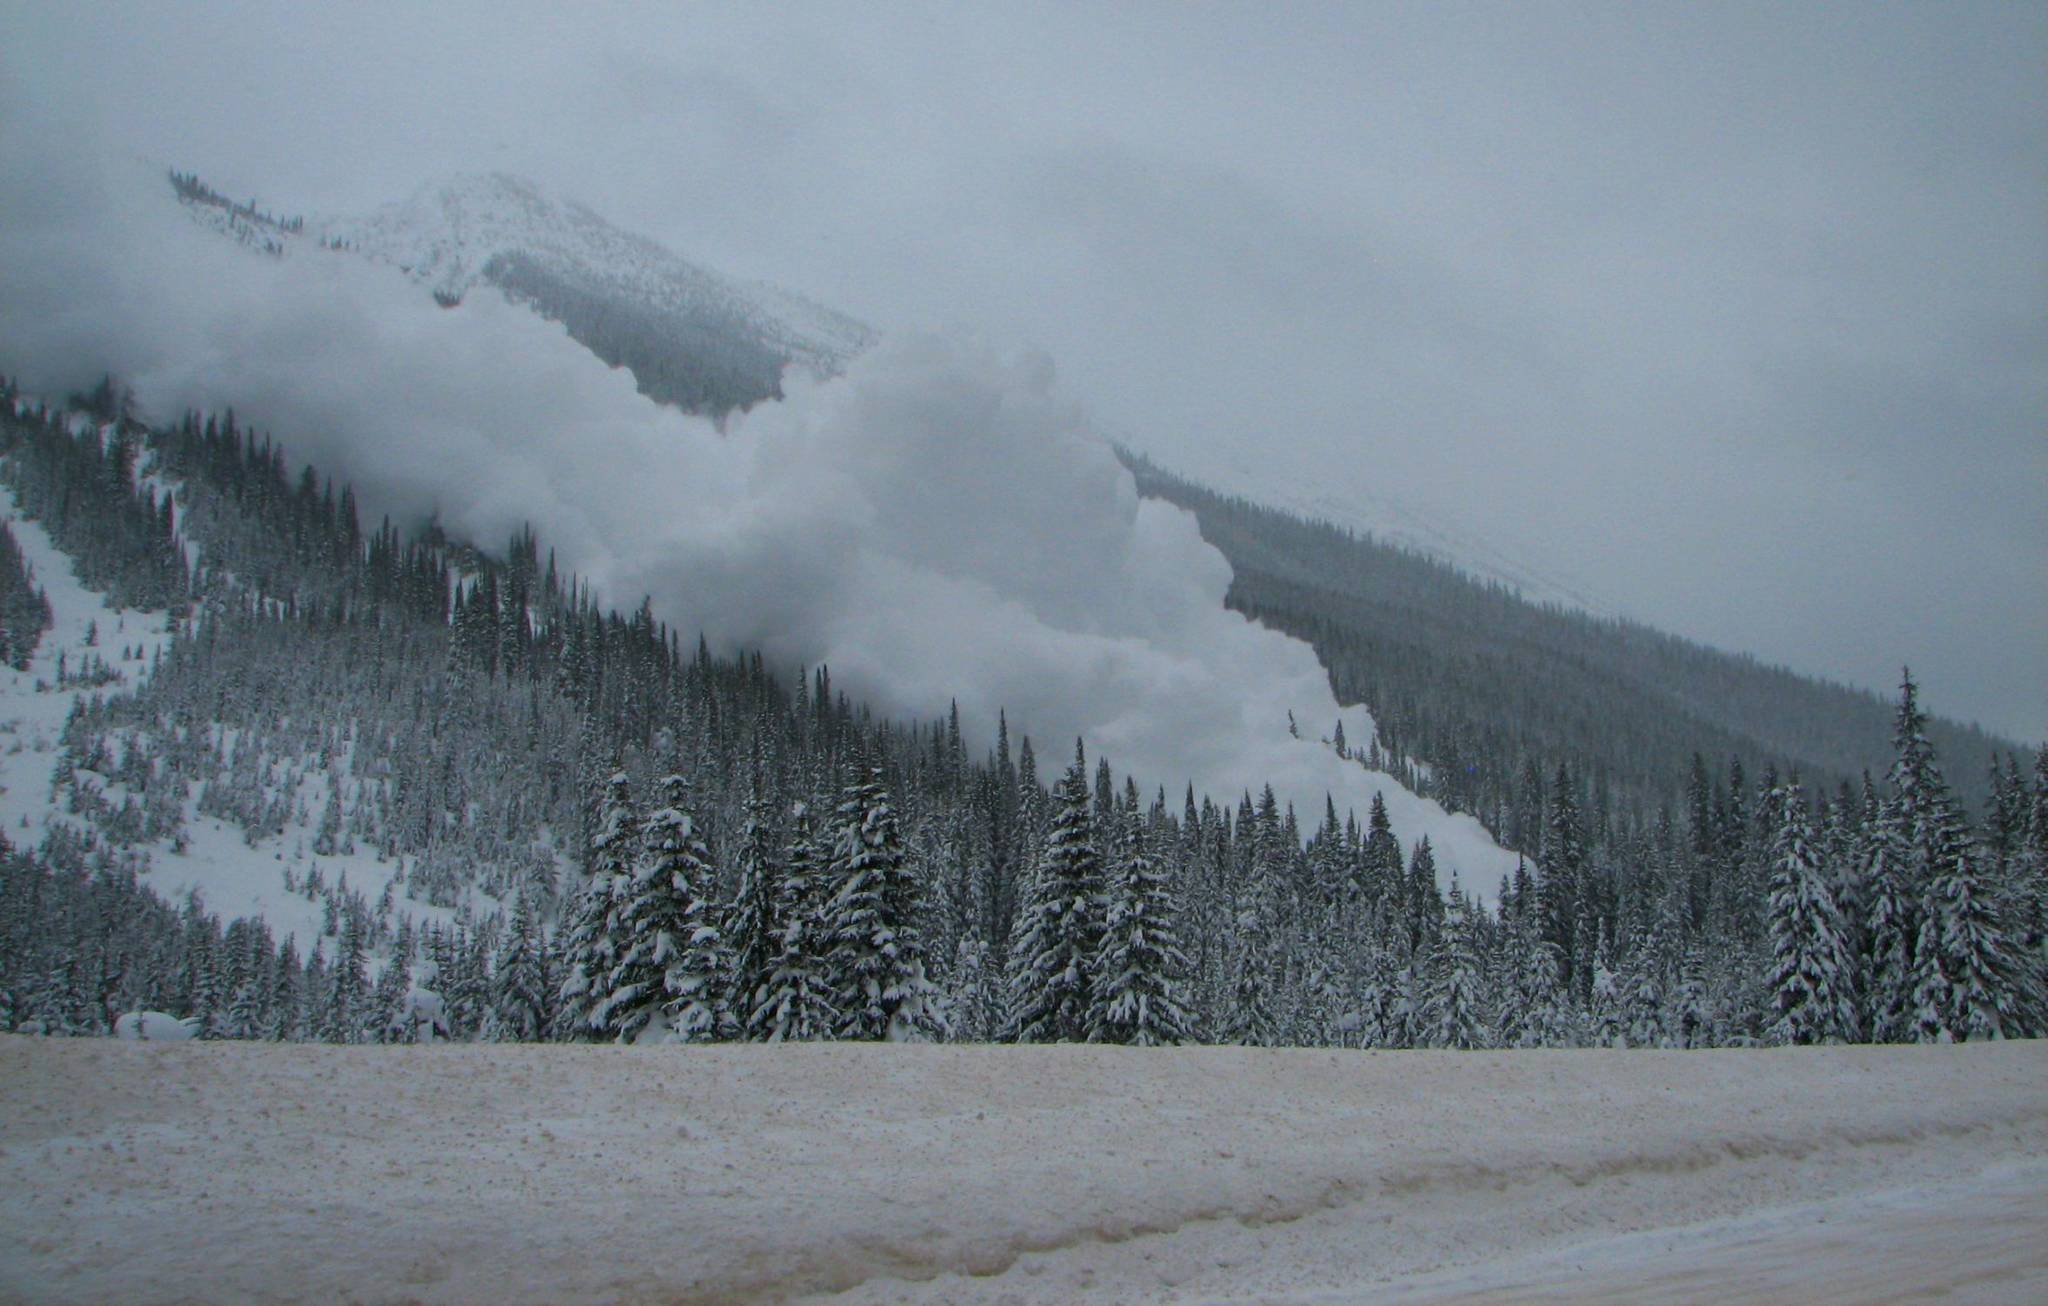 Avalanche near Highway 1 in Glacier National Park. (Photo by Parks Canada)